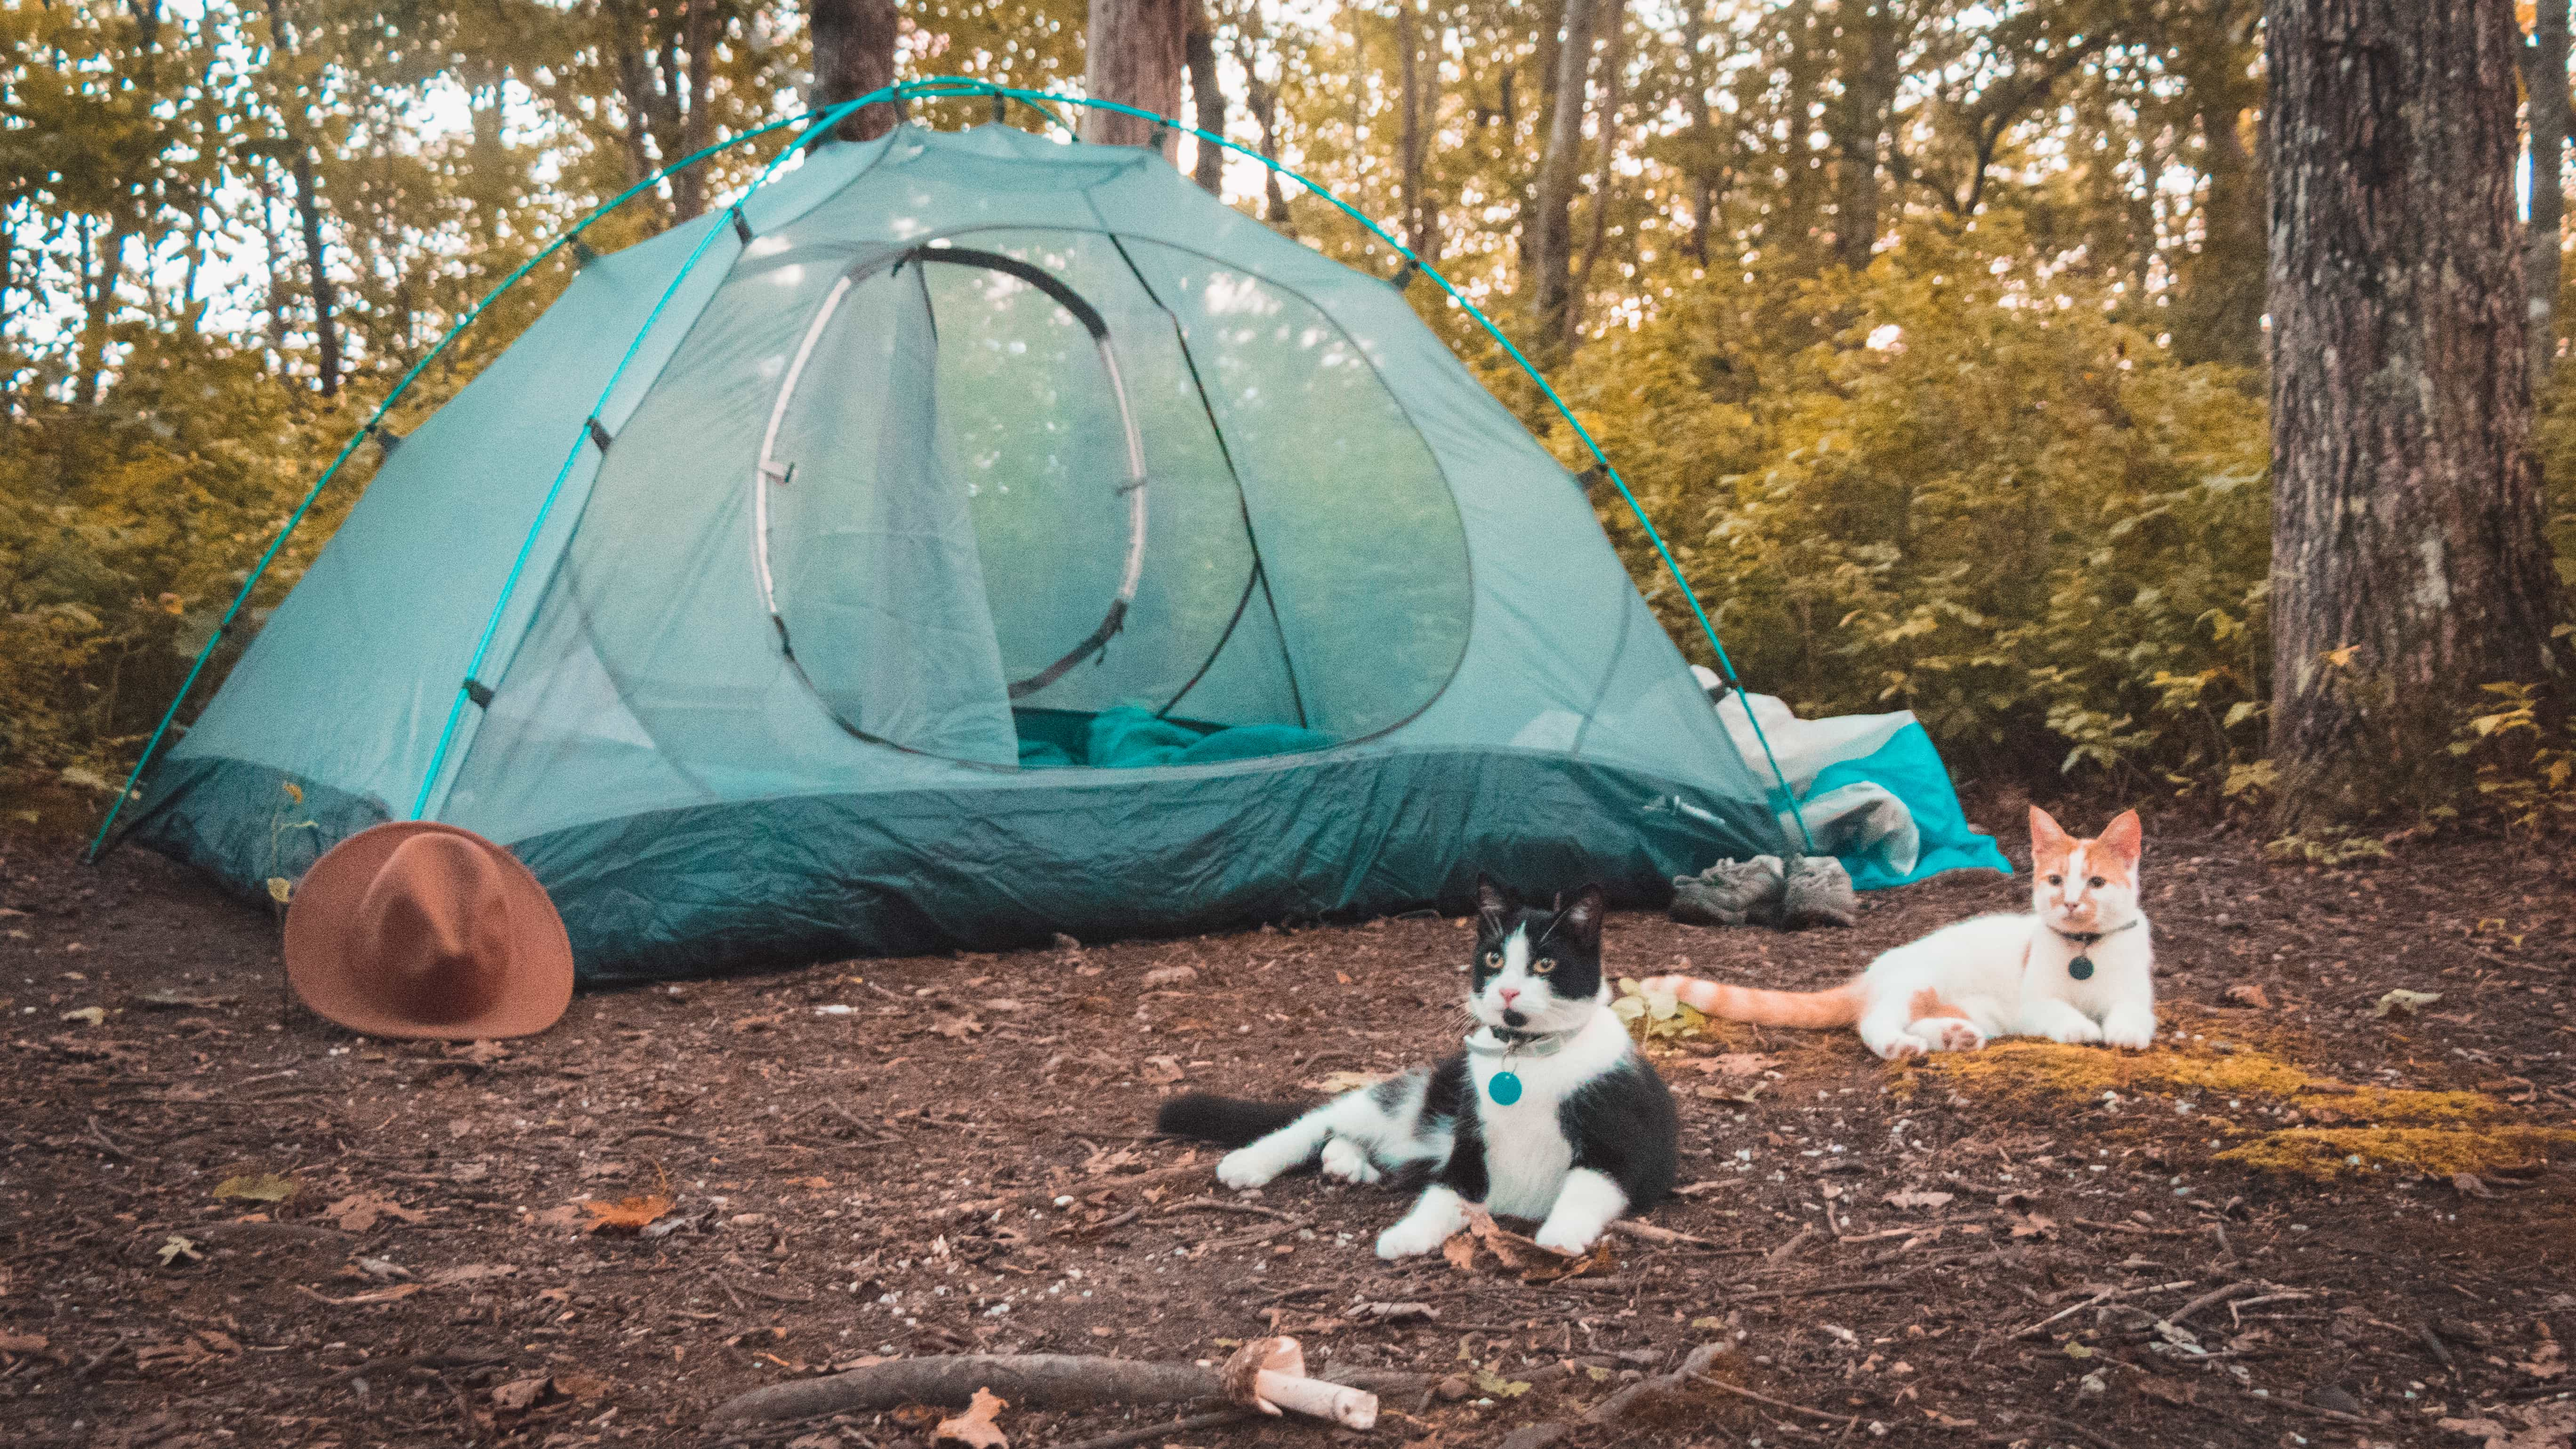 Shalee Blackmer - Camping With Cats